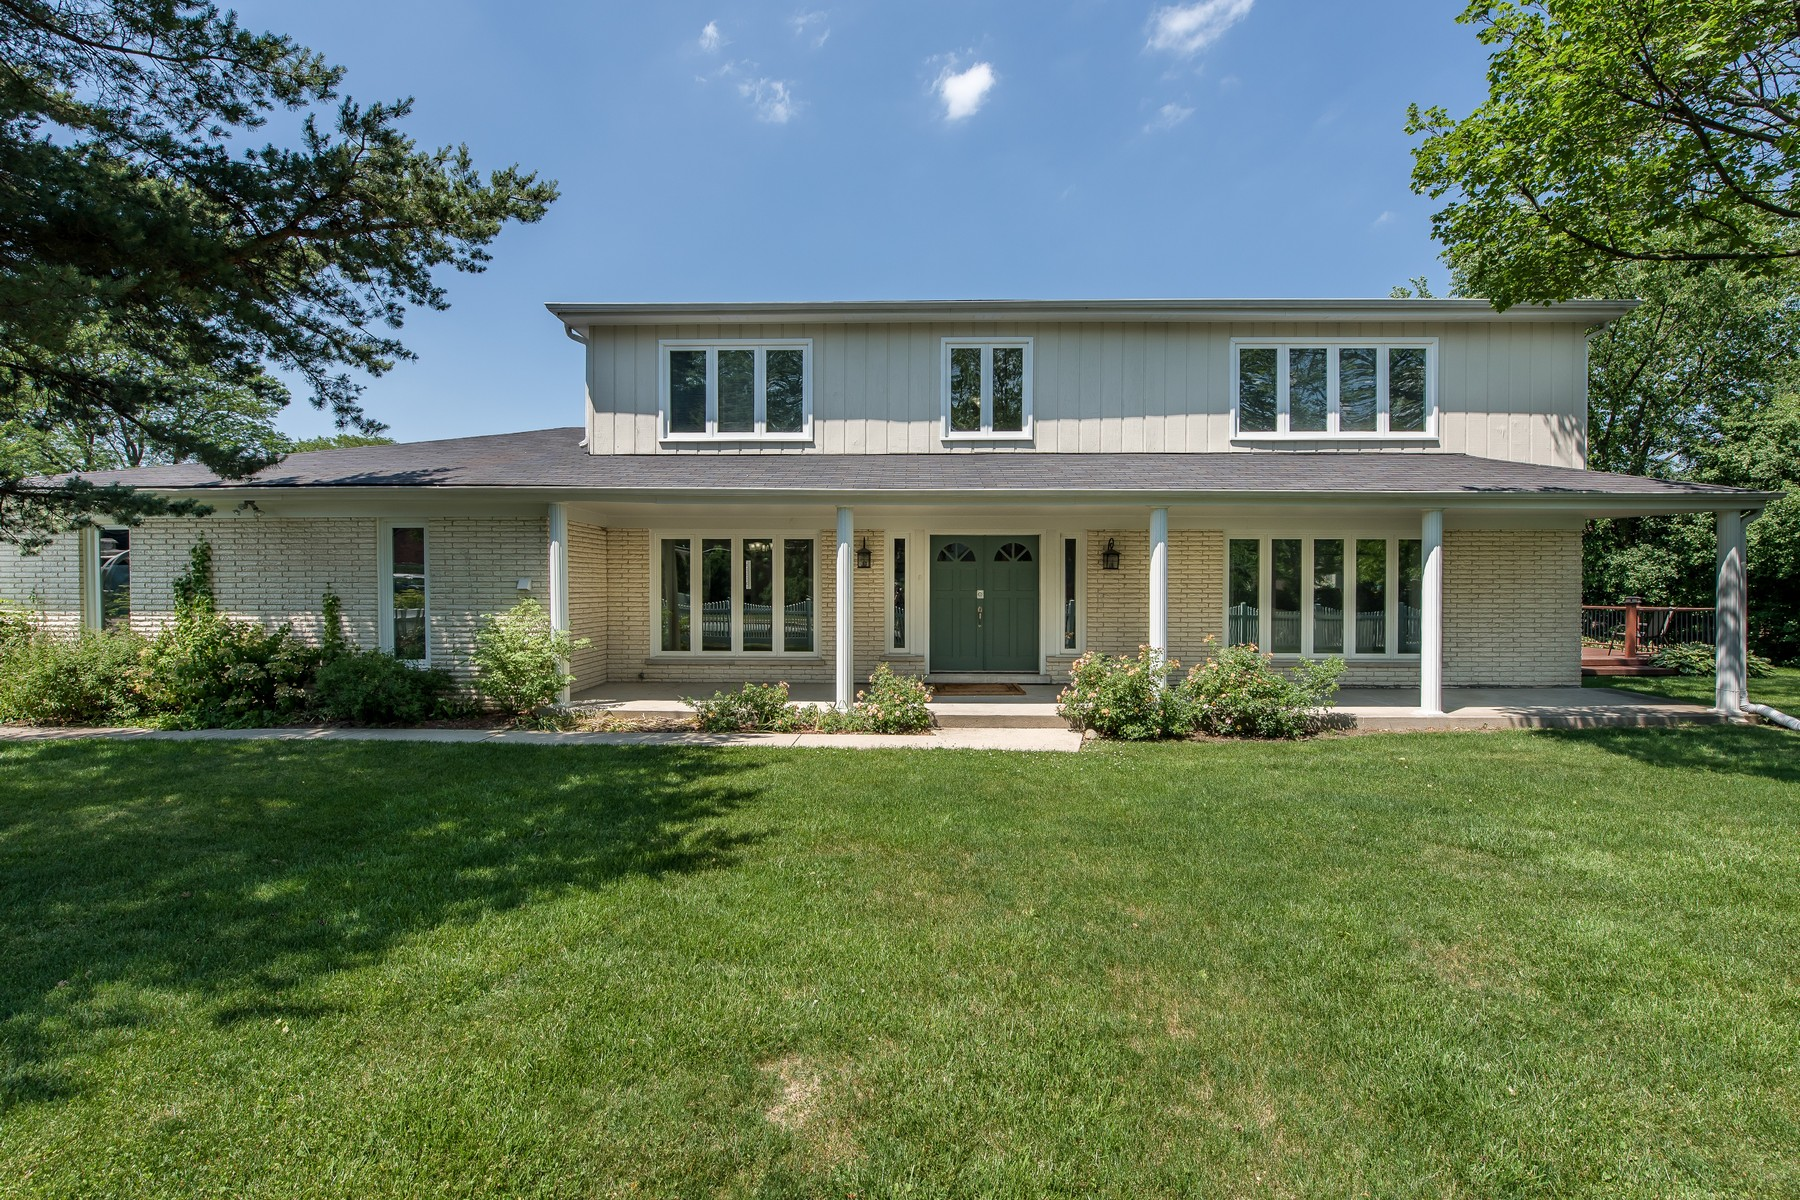 Casa Unifamiliar por un Venta en Spacious Two Story Home 2736 Glenview Road Glenview, Illinois, 60025 Estados Unidos